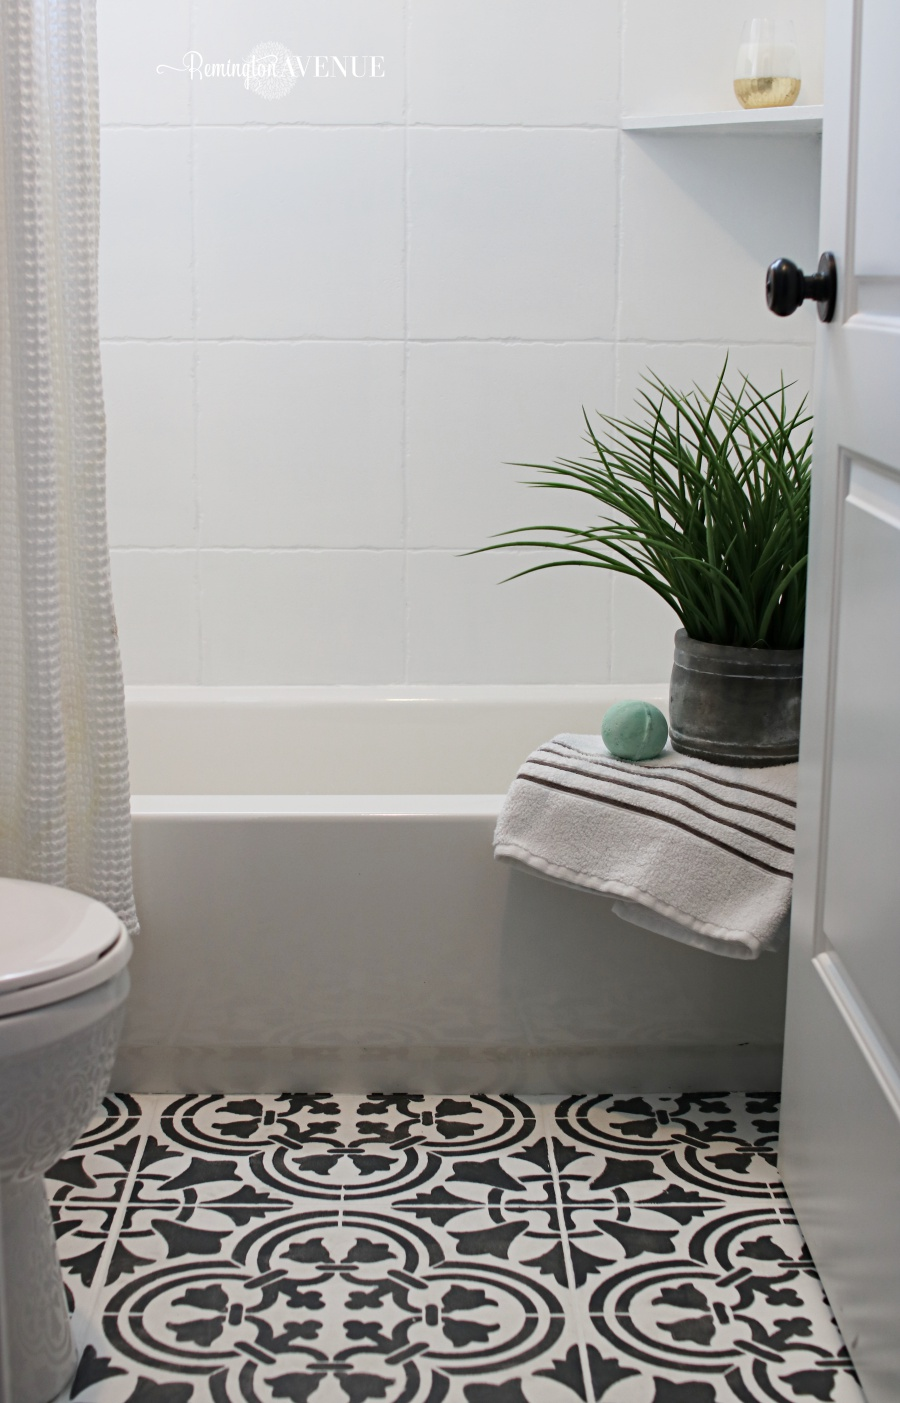 How to paint shower tile remington avenue how to paint shower tile tutorial dailygadgetfo Images